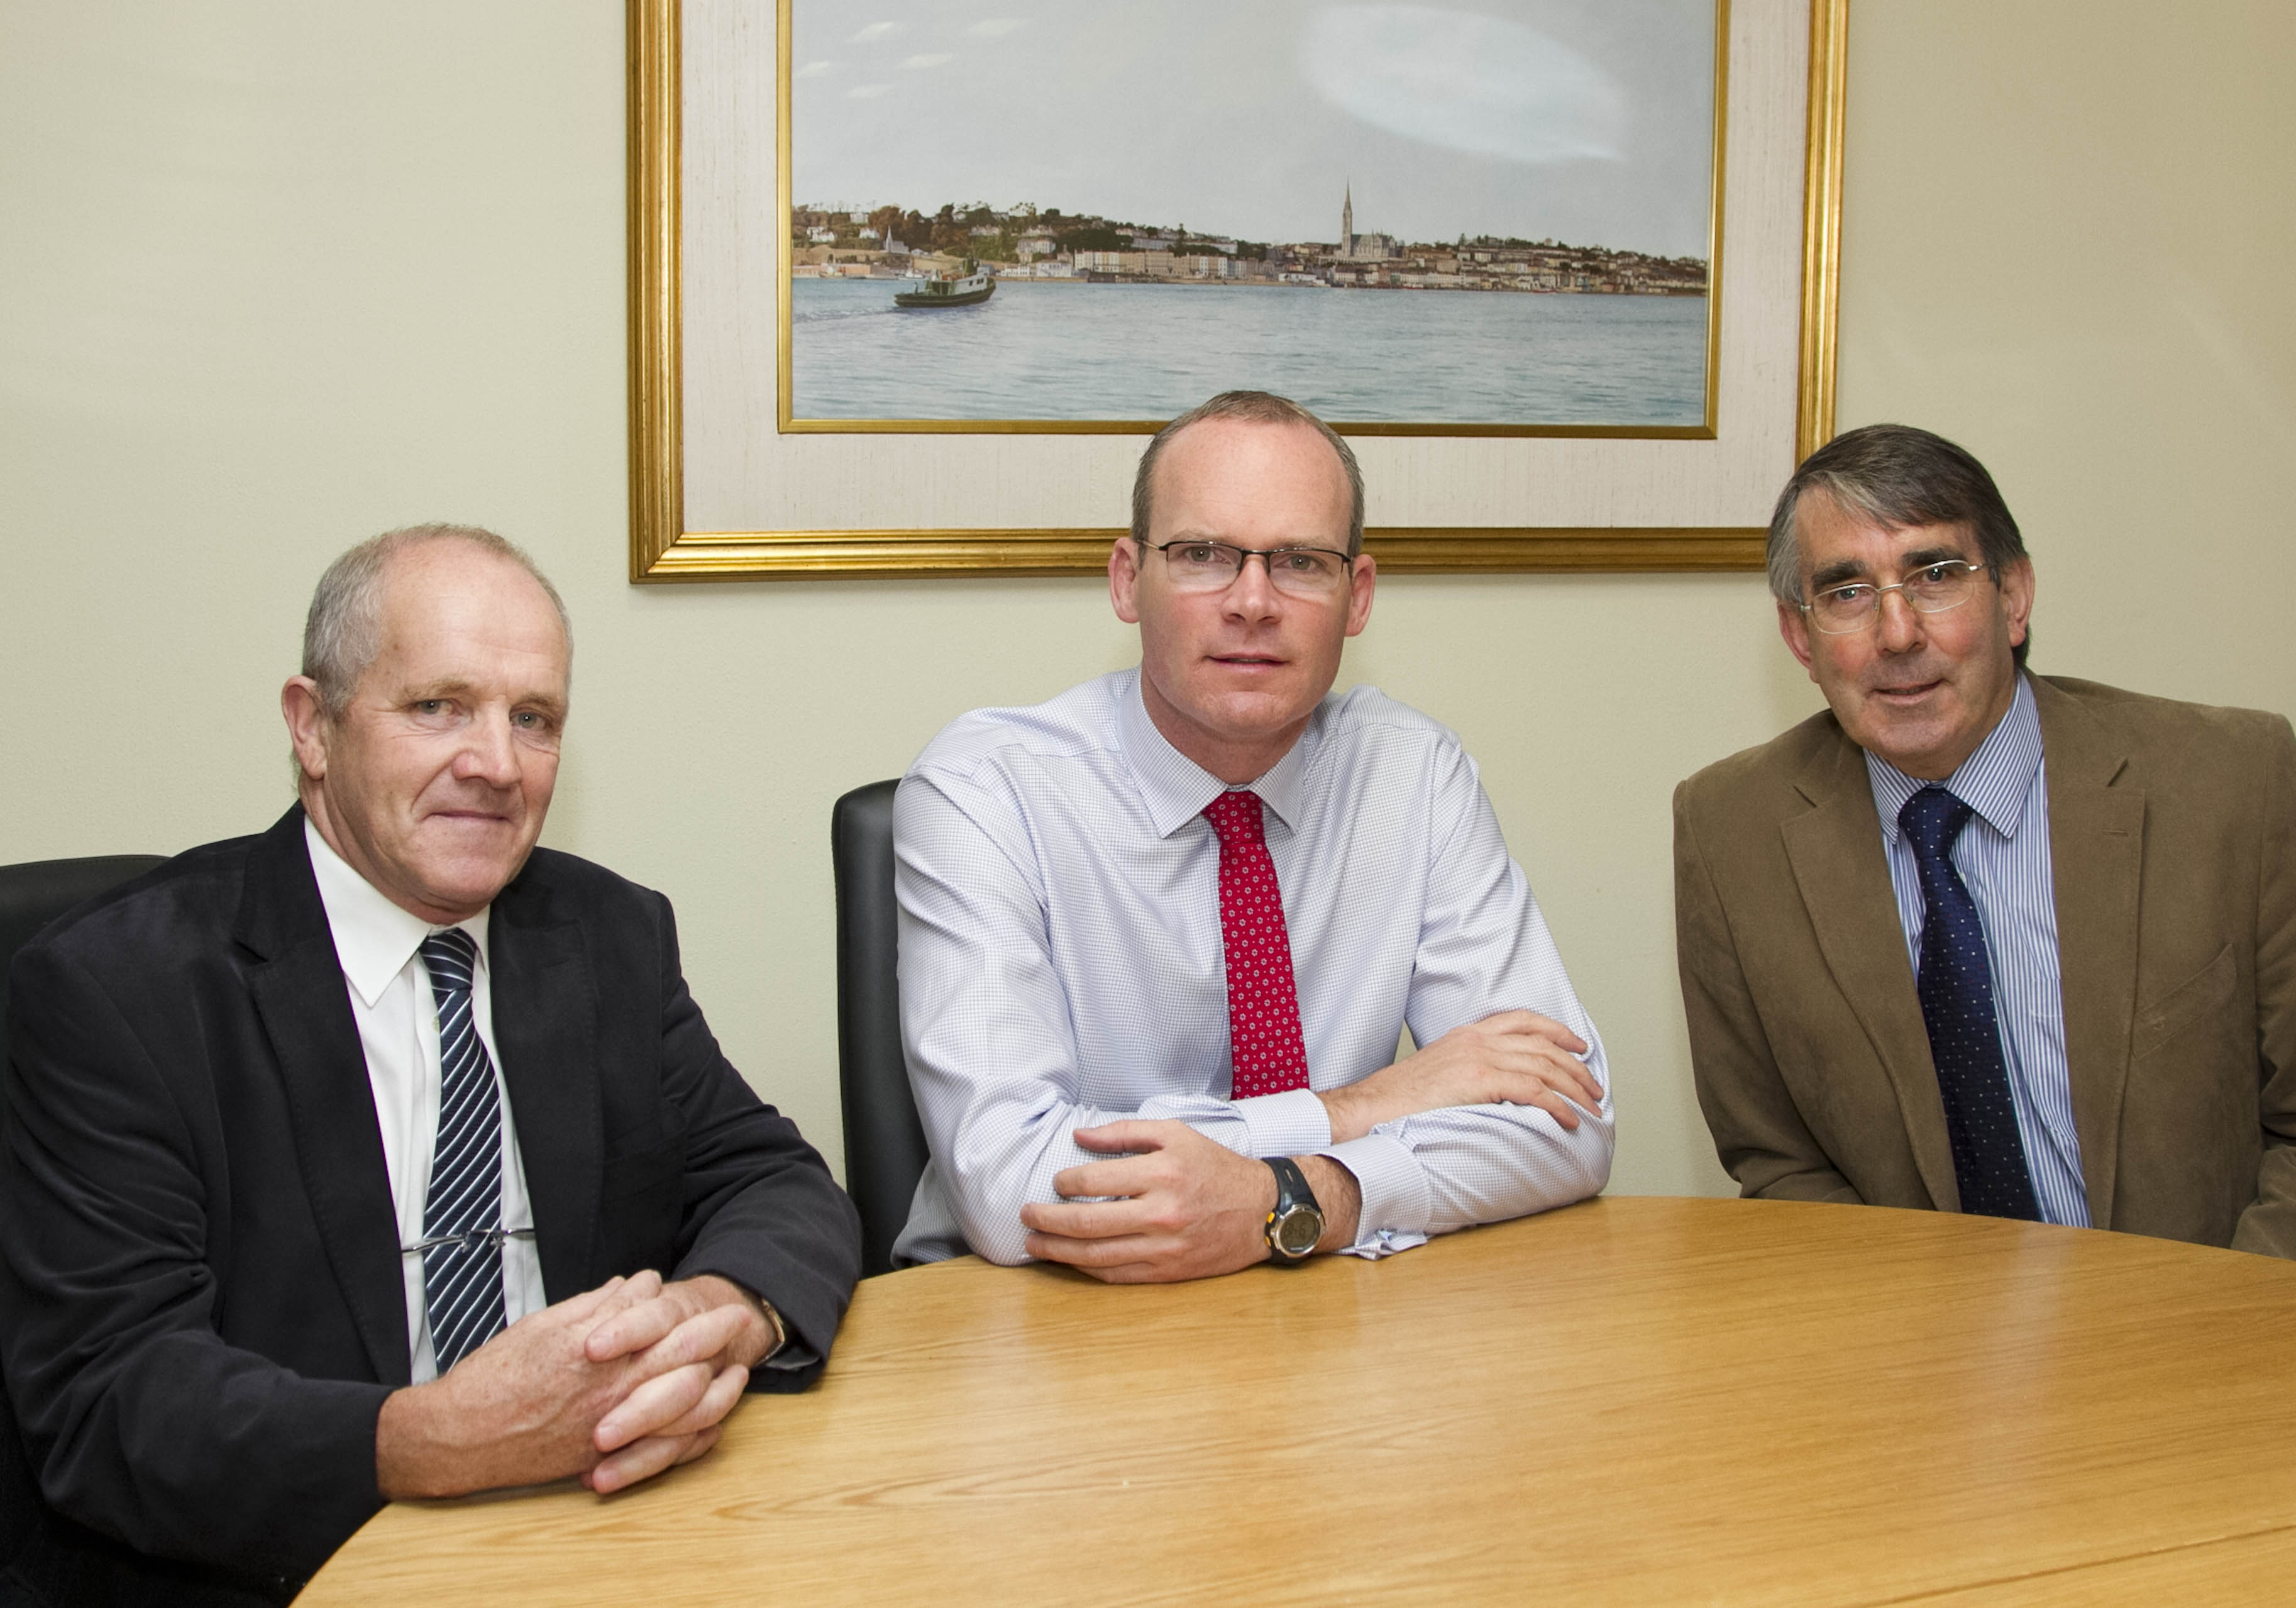 ICOS Meeting with Minister for Agriculture Simon Coveney T.D.  Pictured with Minister Simon Coveney (centre)  were left, Michael Spellman, Chairman ICOS Marts Committee and Seamus O' Donohue, Chief Executive ICOS.